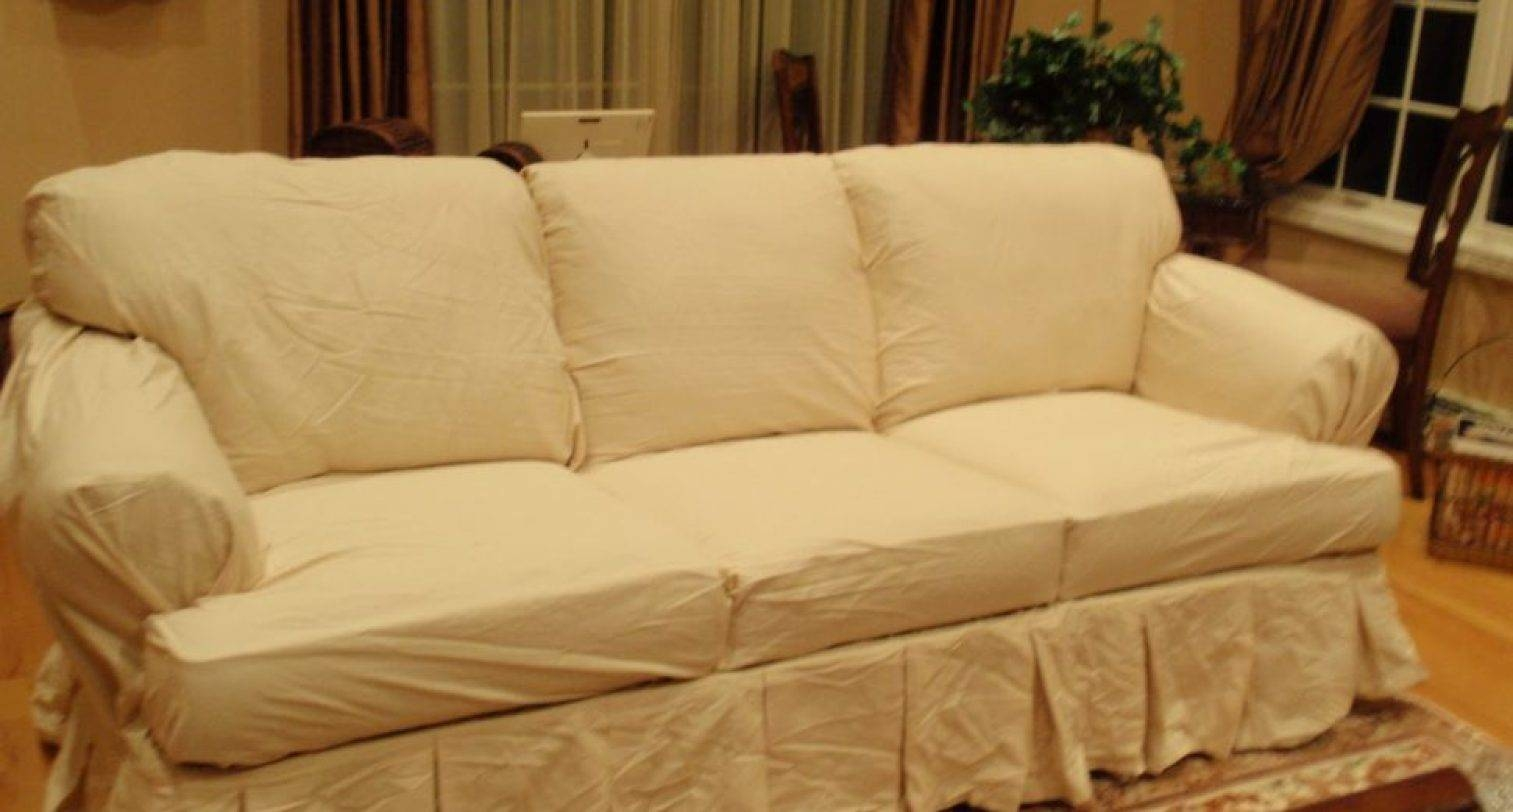 Big Cushion Sofa 15 Best T Cushion Slipcovers For Large Sofas